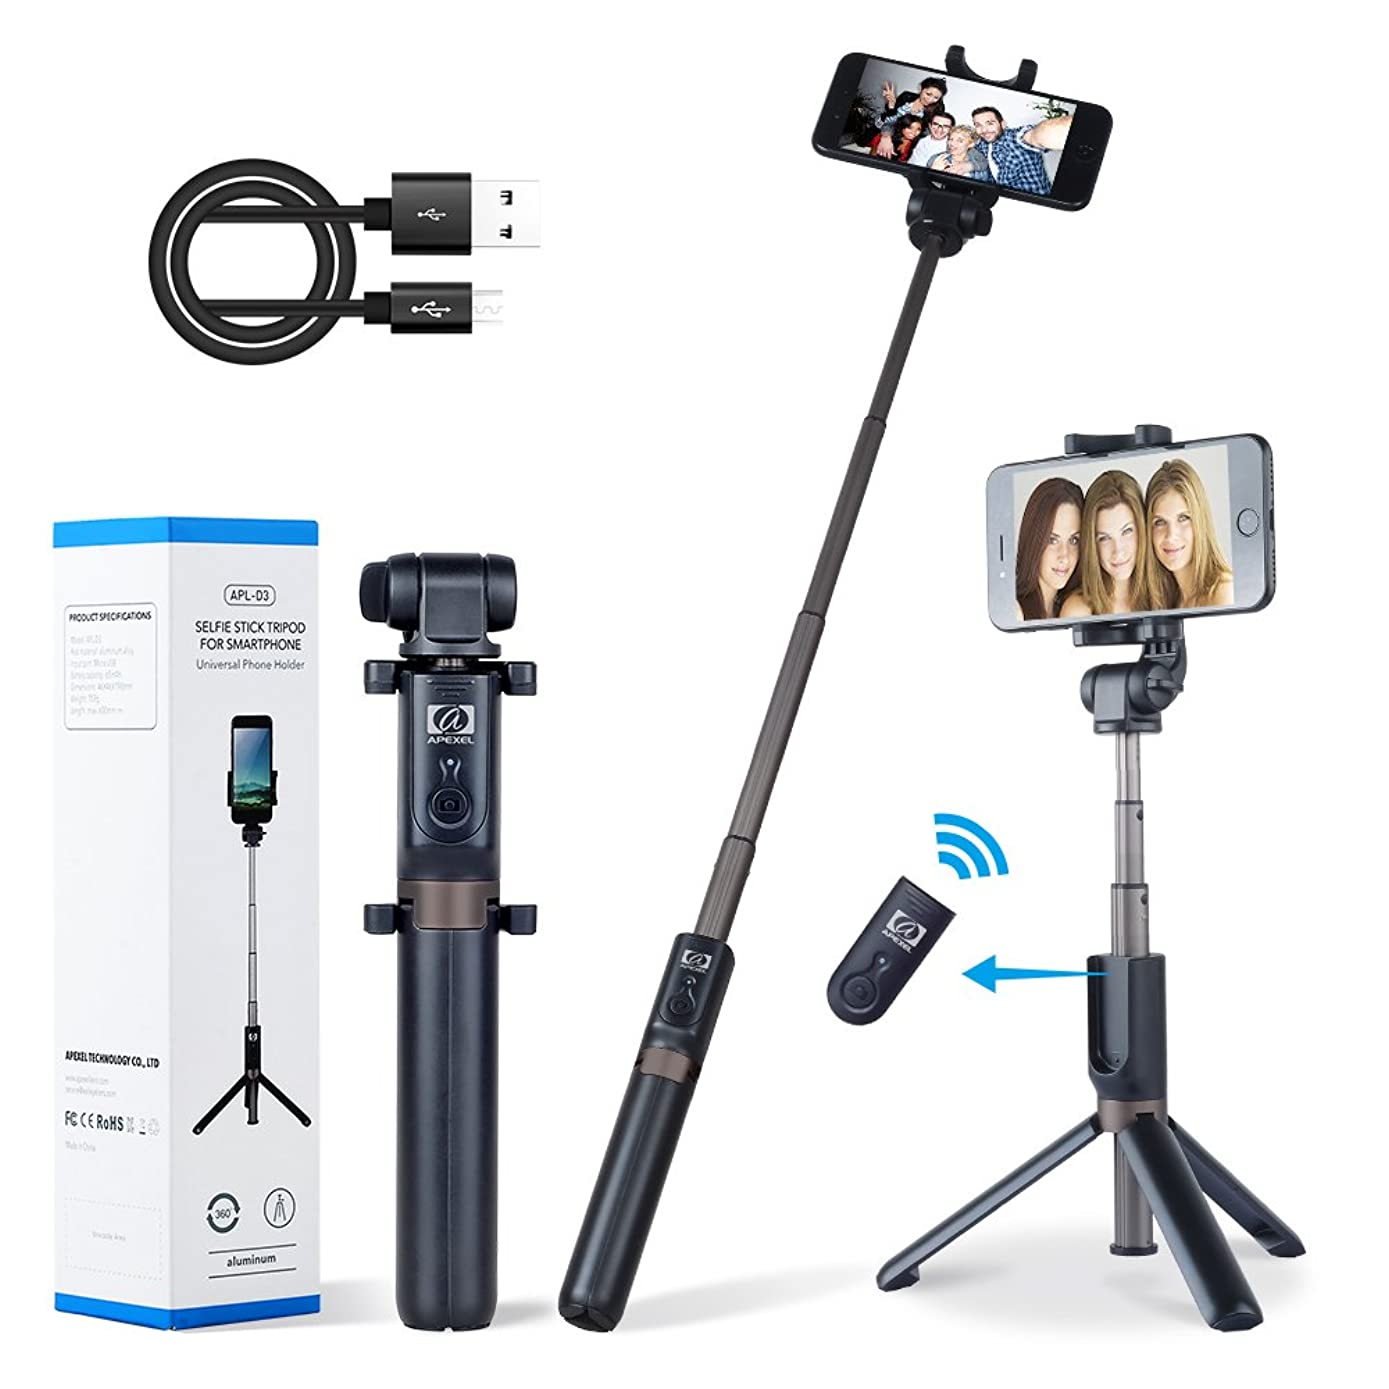 Apexel 2-in-1 Extendable Bluetooth Selfie Stick Monopod Tripod Stand with Wireless Remote Shutter for iPhone Xs/XS Max/XR/X/8/8 Plus/7/7 Plus/6s/6 Plus, Galaxy S9/S8/S7 Plus, Nubia, Huawei and More